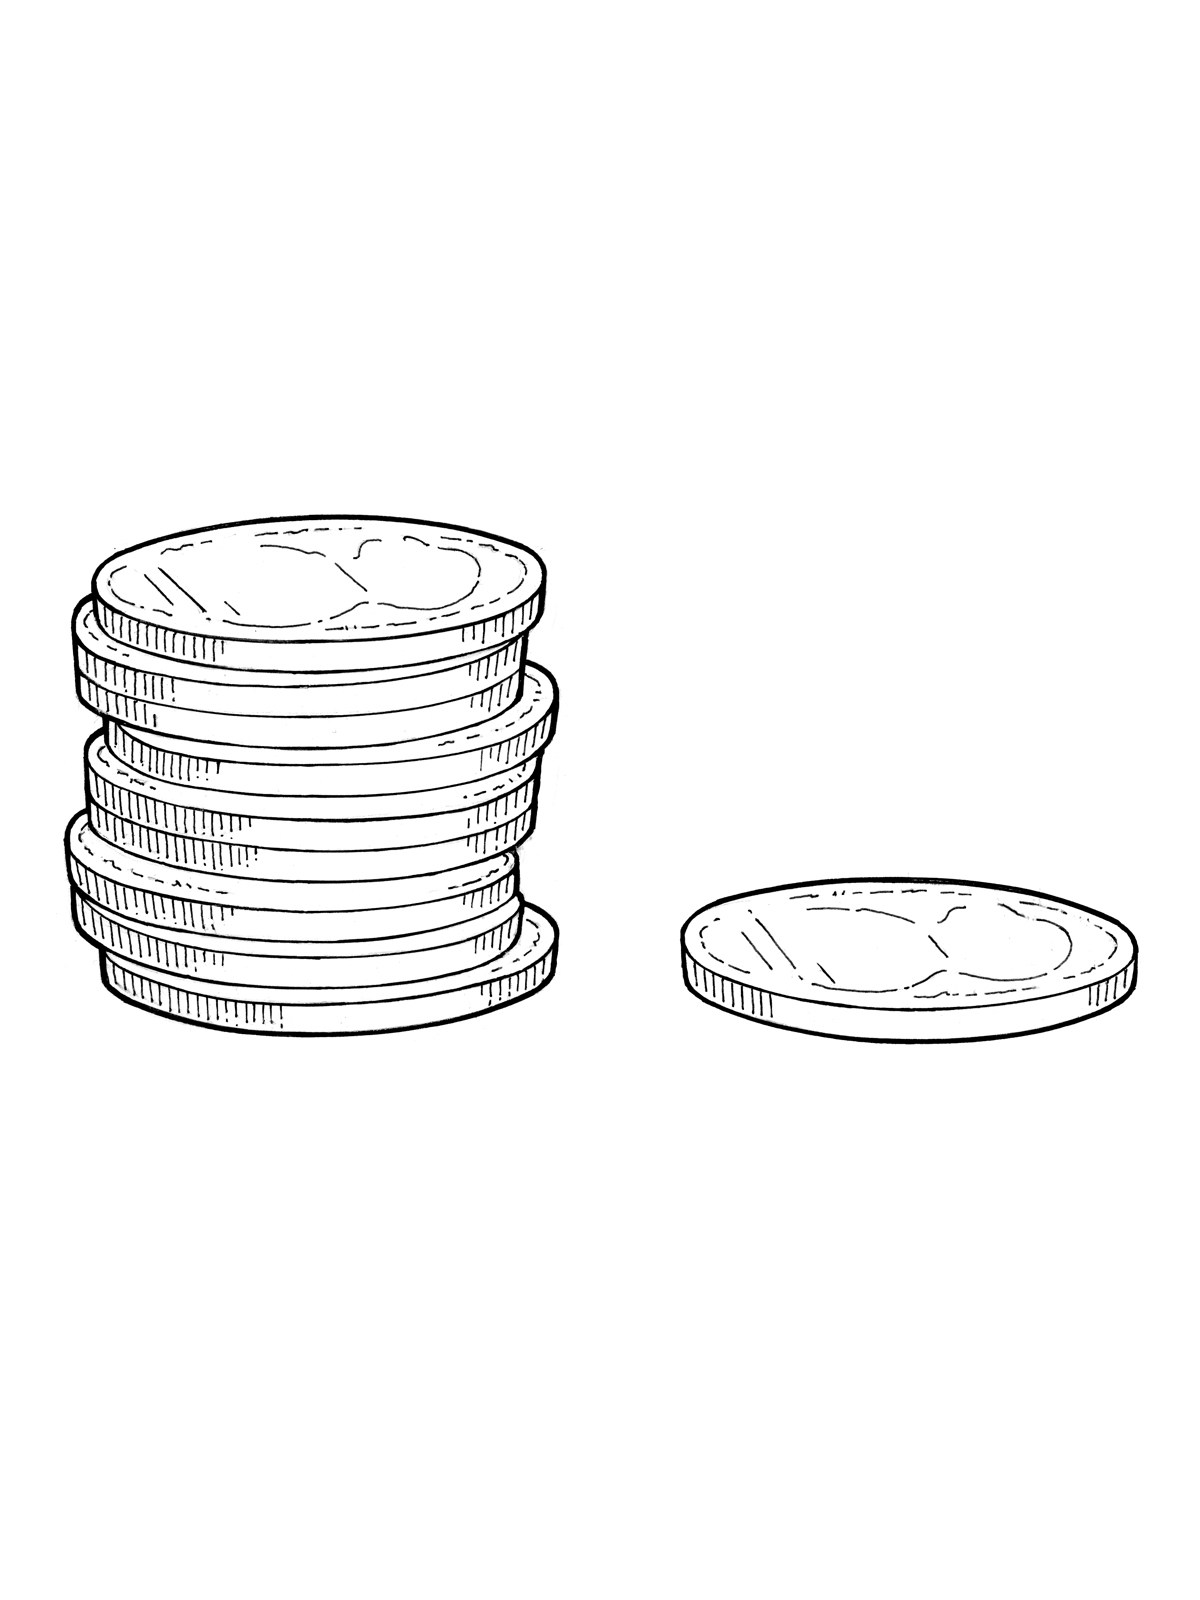 Lds tithing clipart 4 » Clipart Portal.